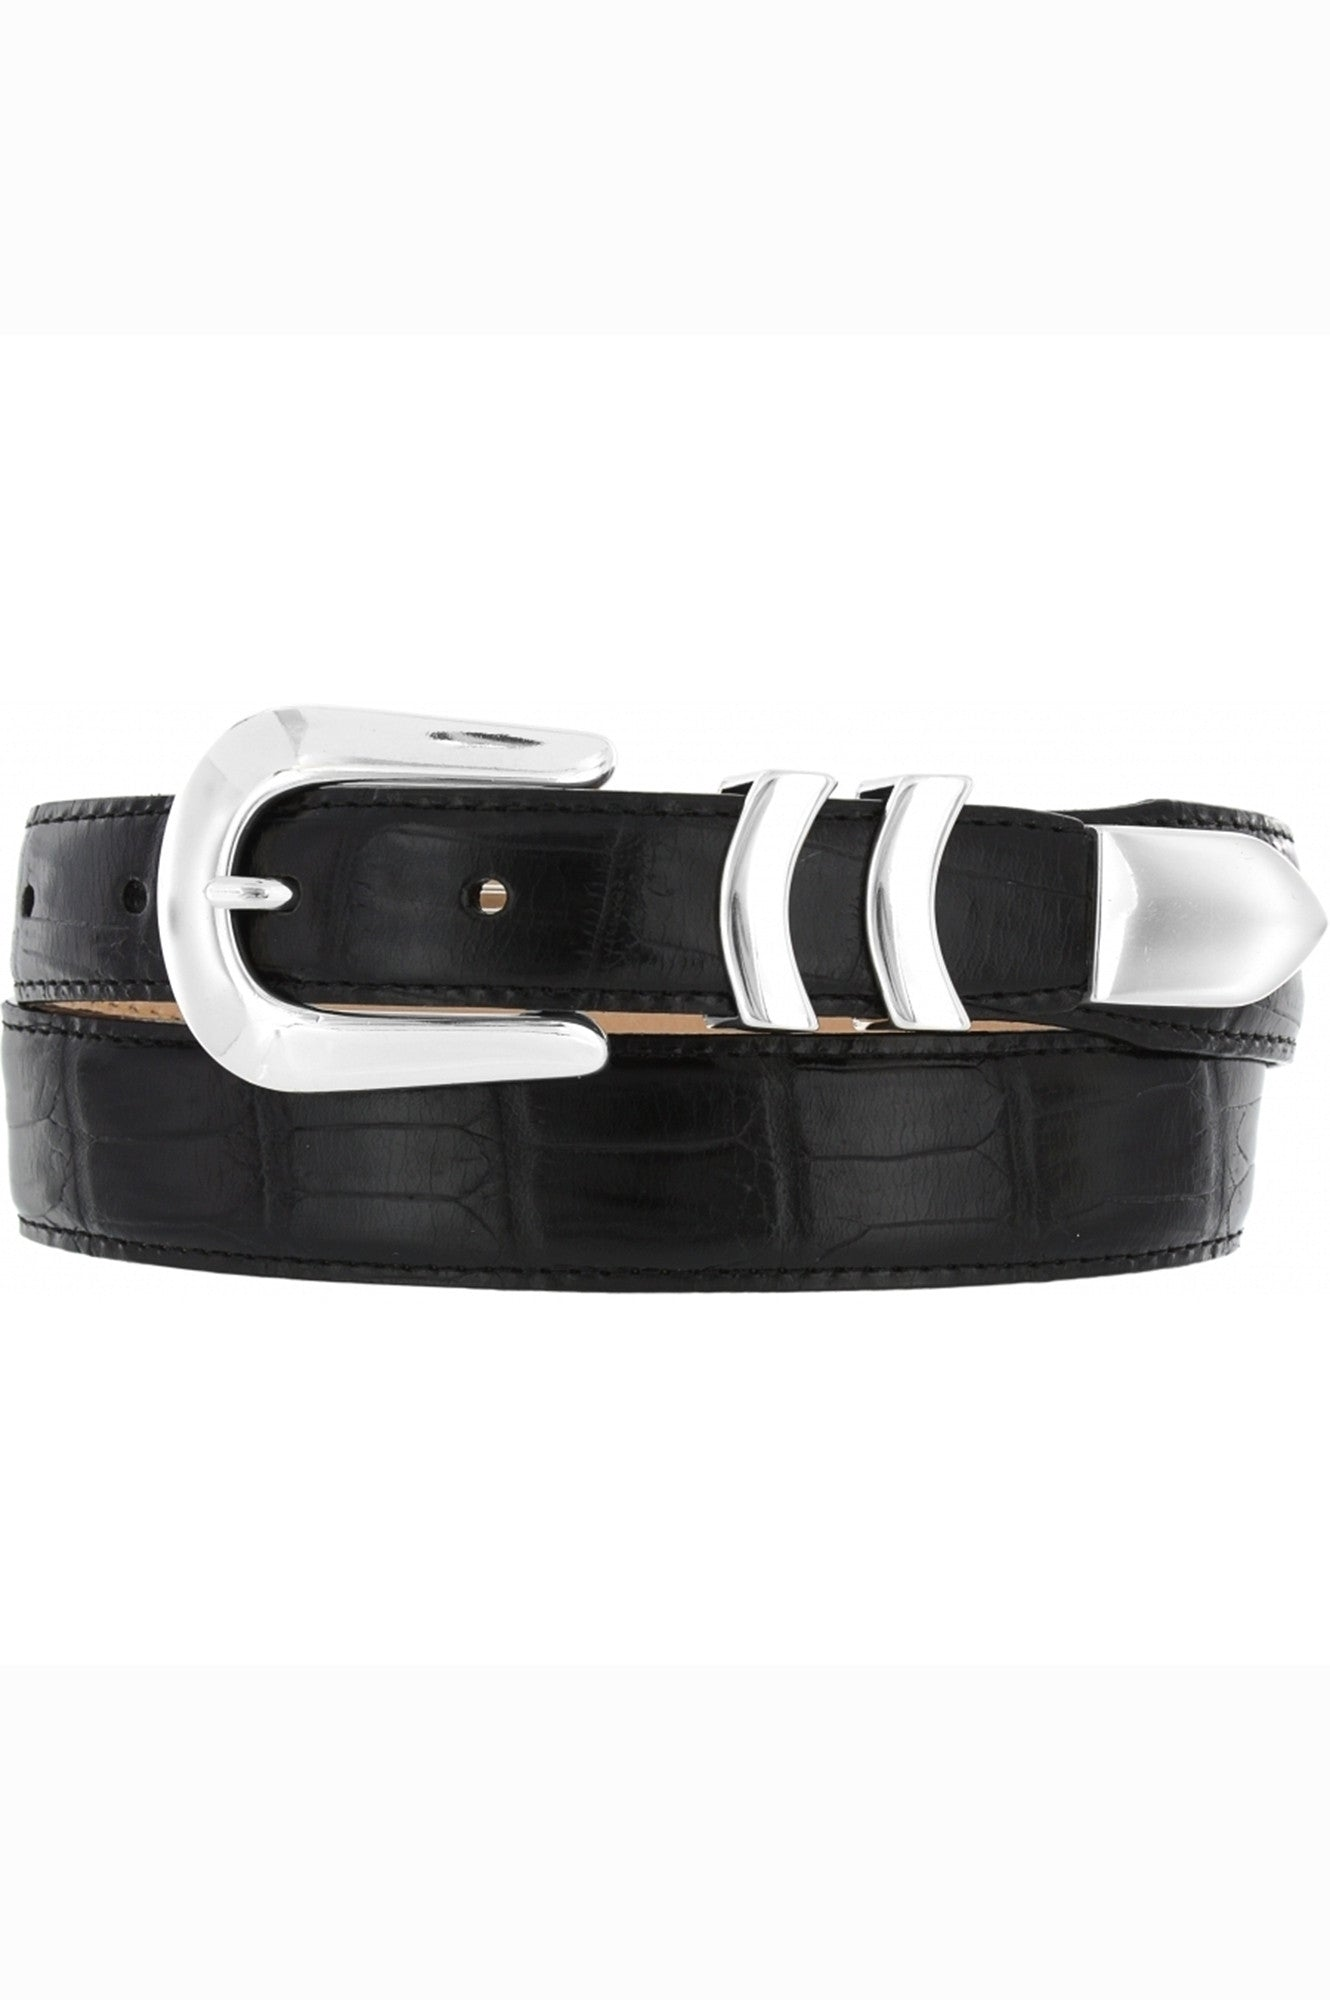 mens black leather belt, belts, mens leather goods, brighton belts, brighton leather, croc belt, black dress belt